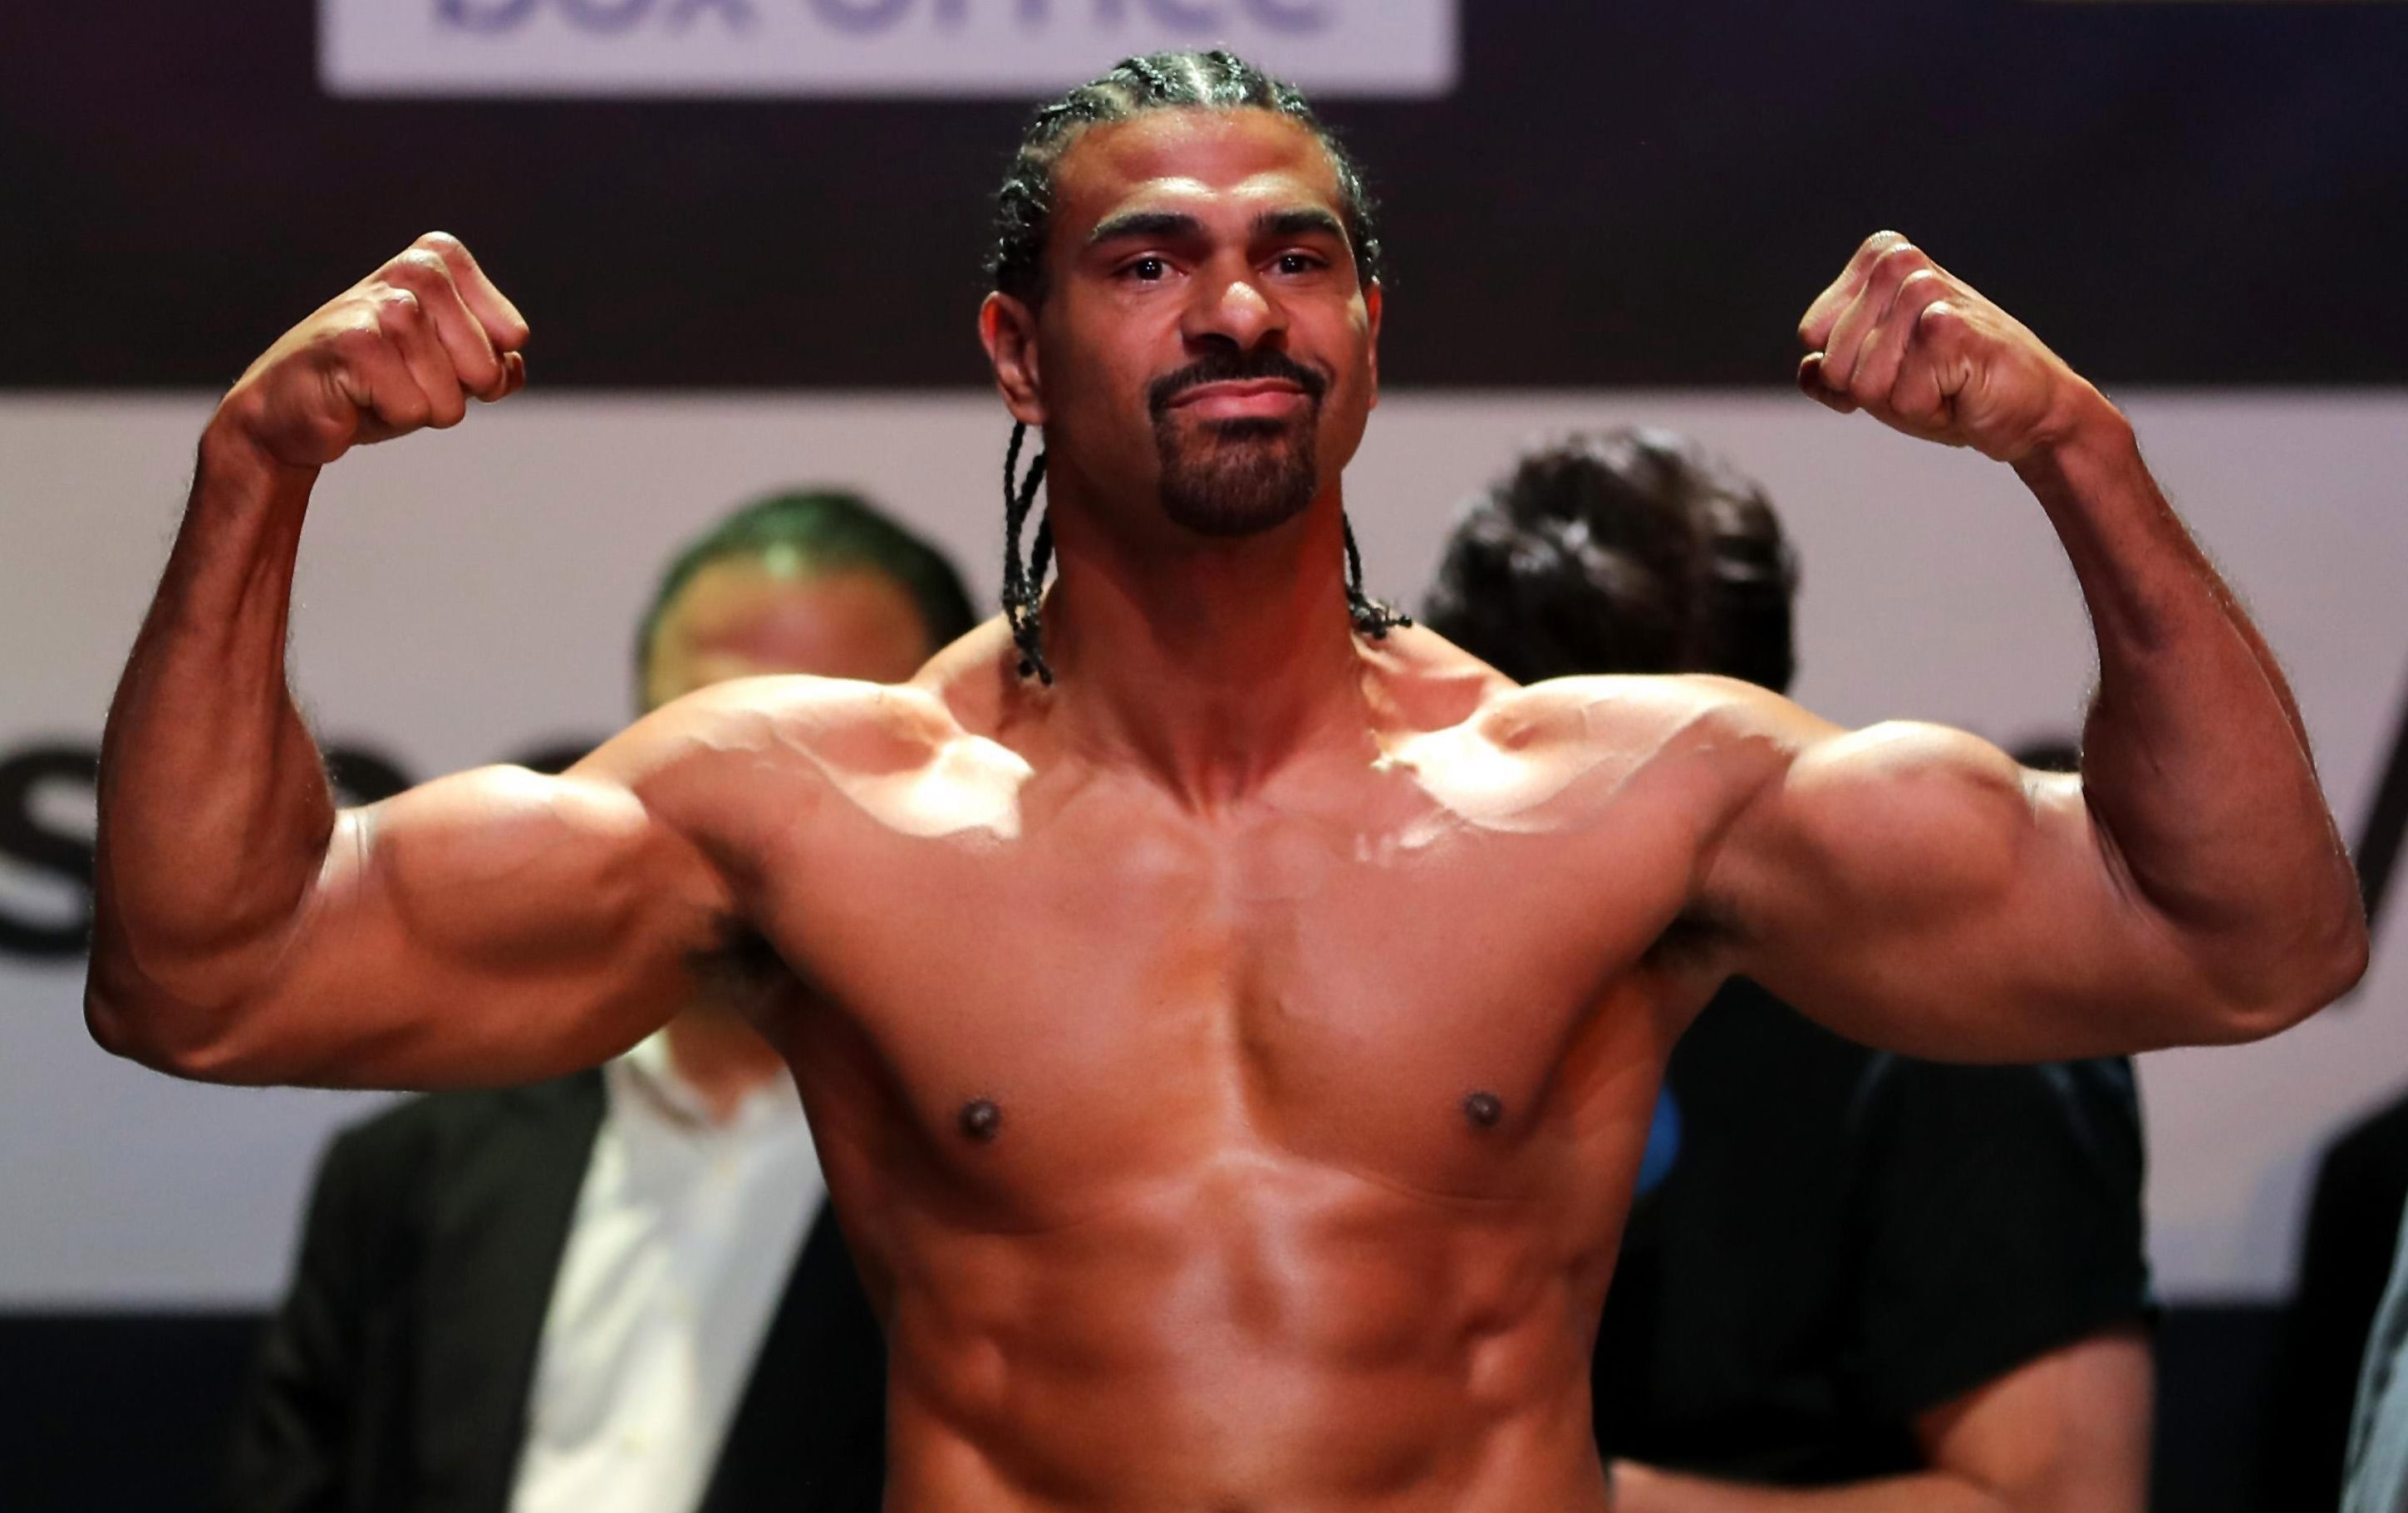 David Haye has urged Dillian Whyte to change his image and land a rematch with Anthony Joshua